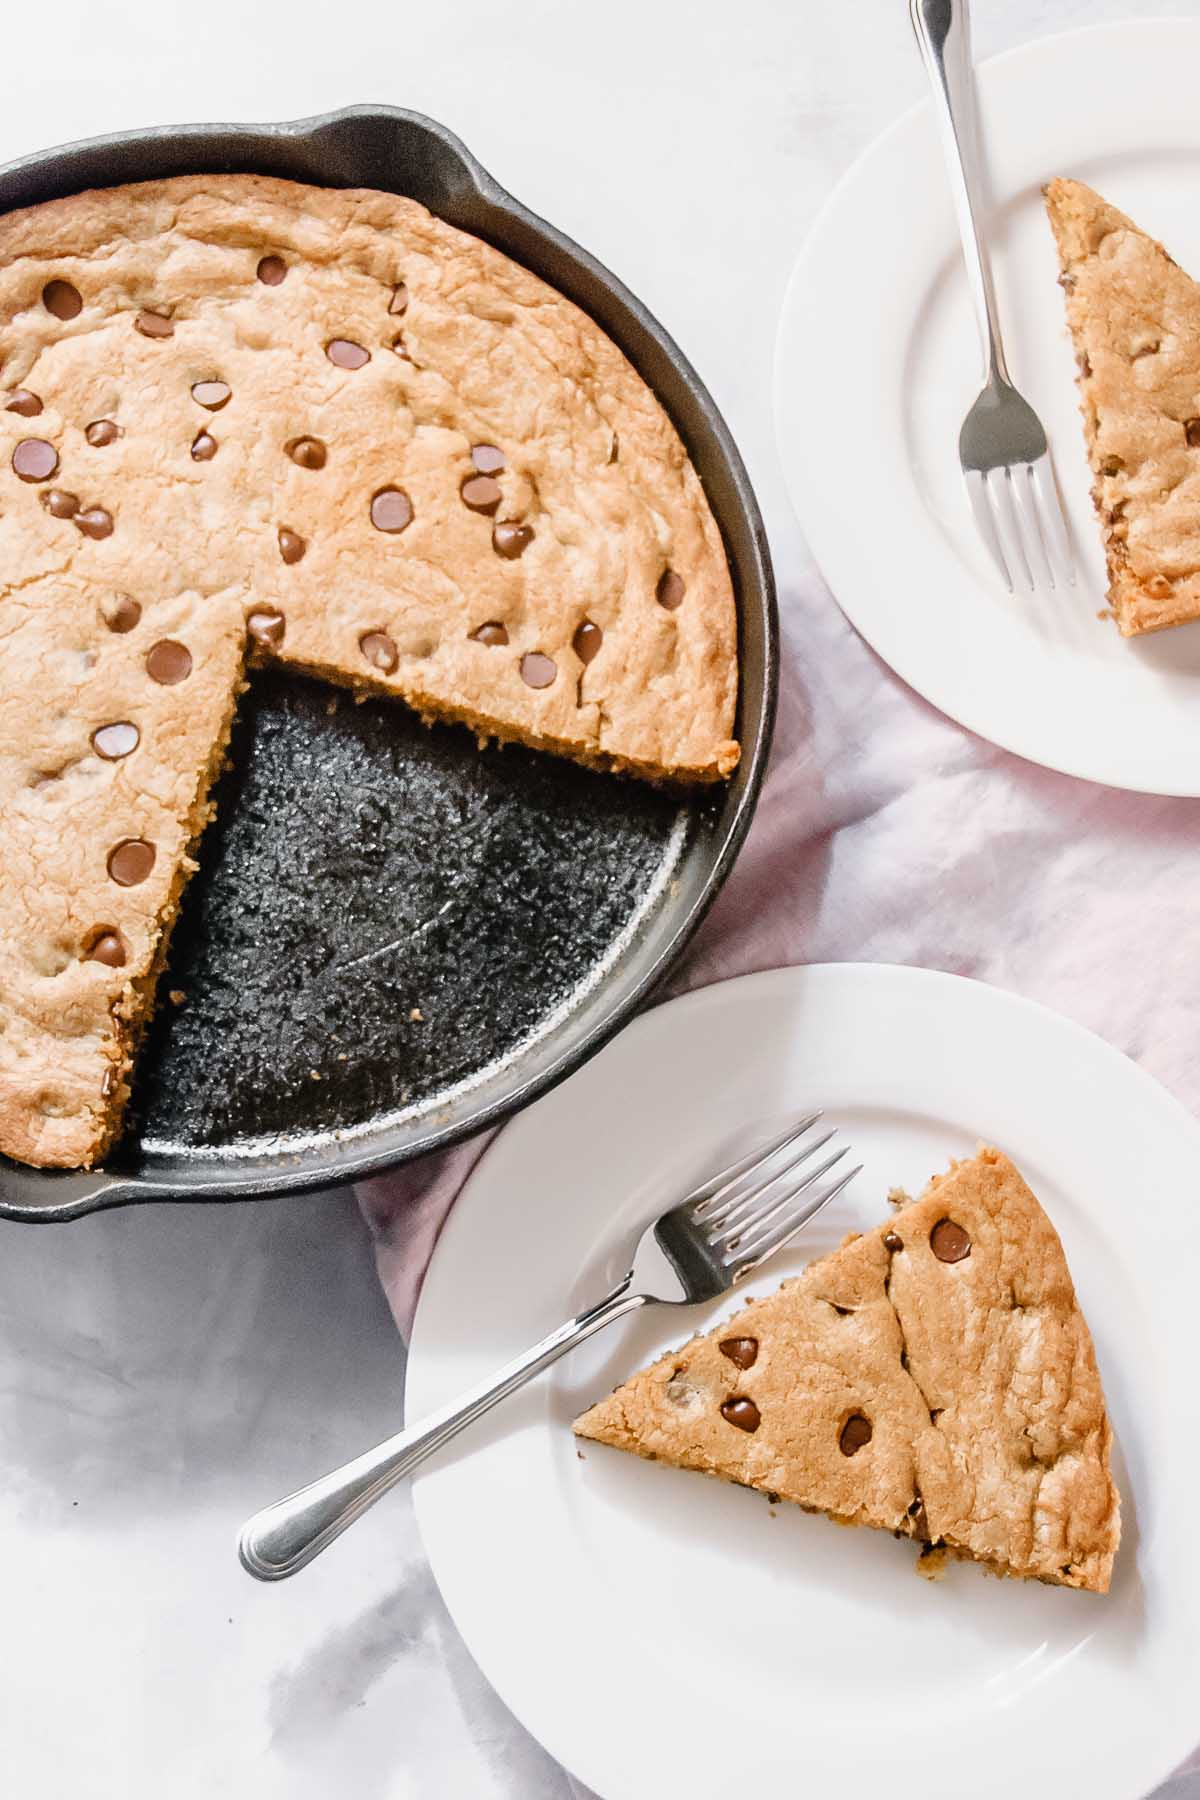 Giant chocolate chip skillet cookie served on two white plates.